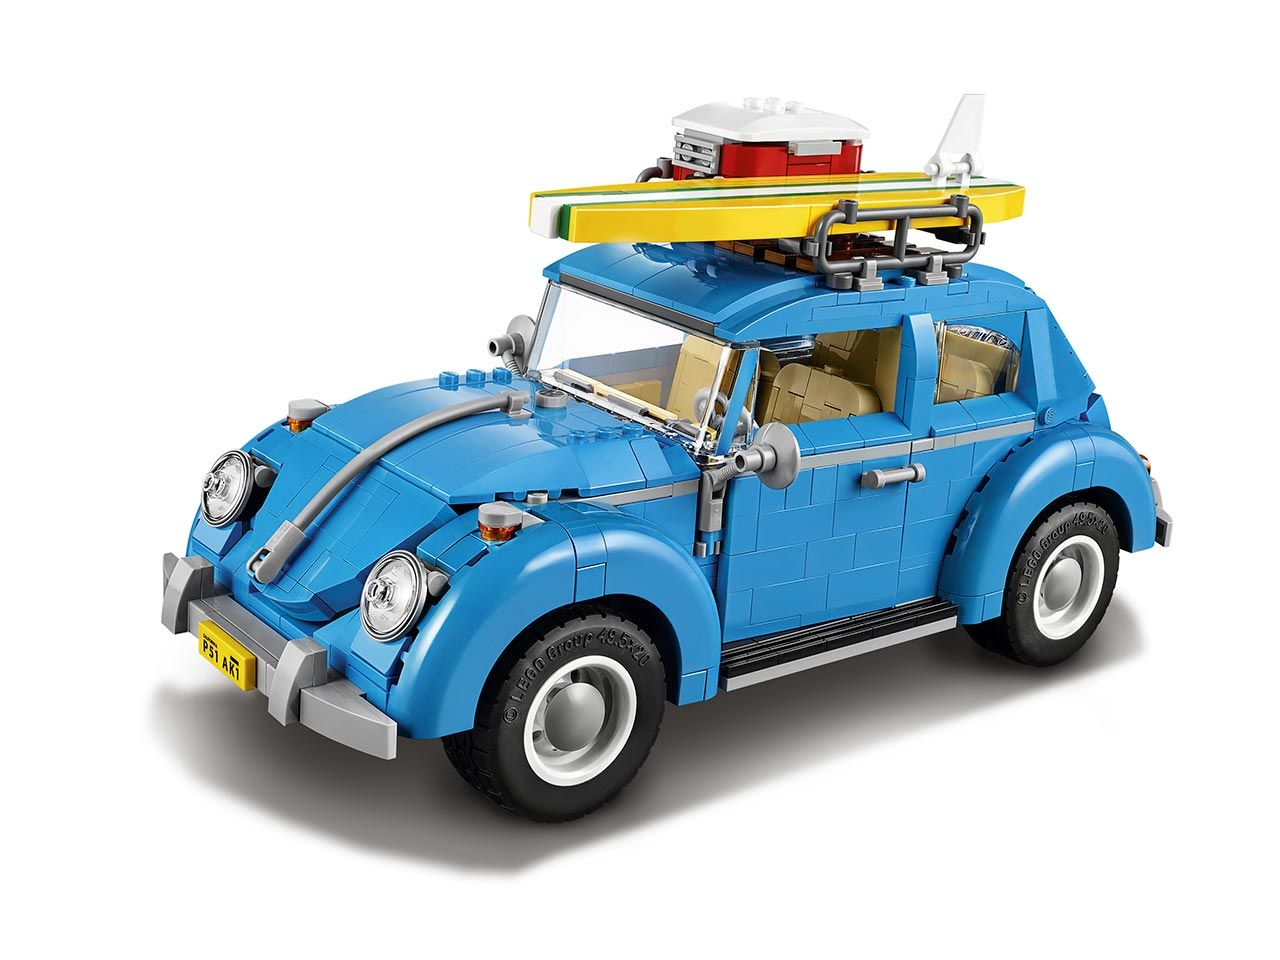 Toy Cars Car Toys For Boys And Girls Toddlers And Older Kids